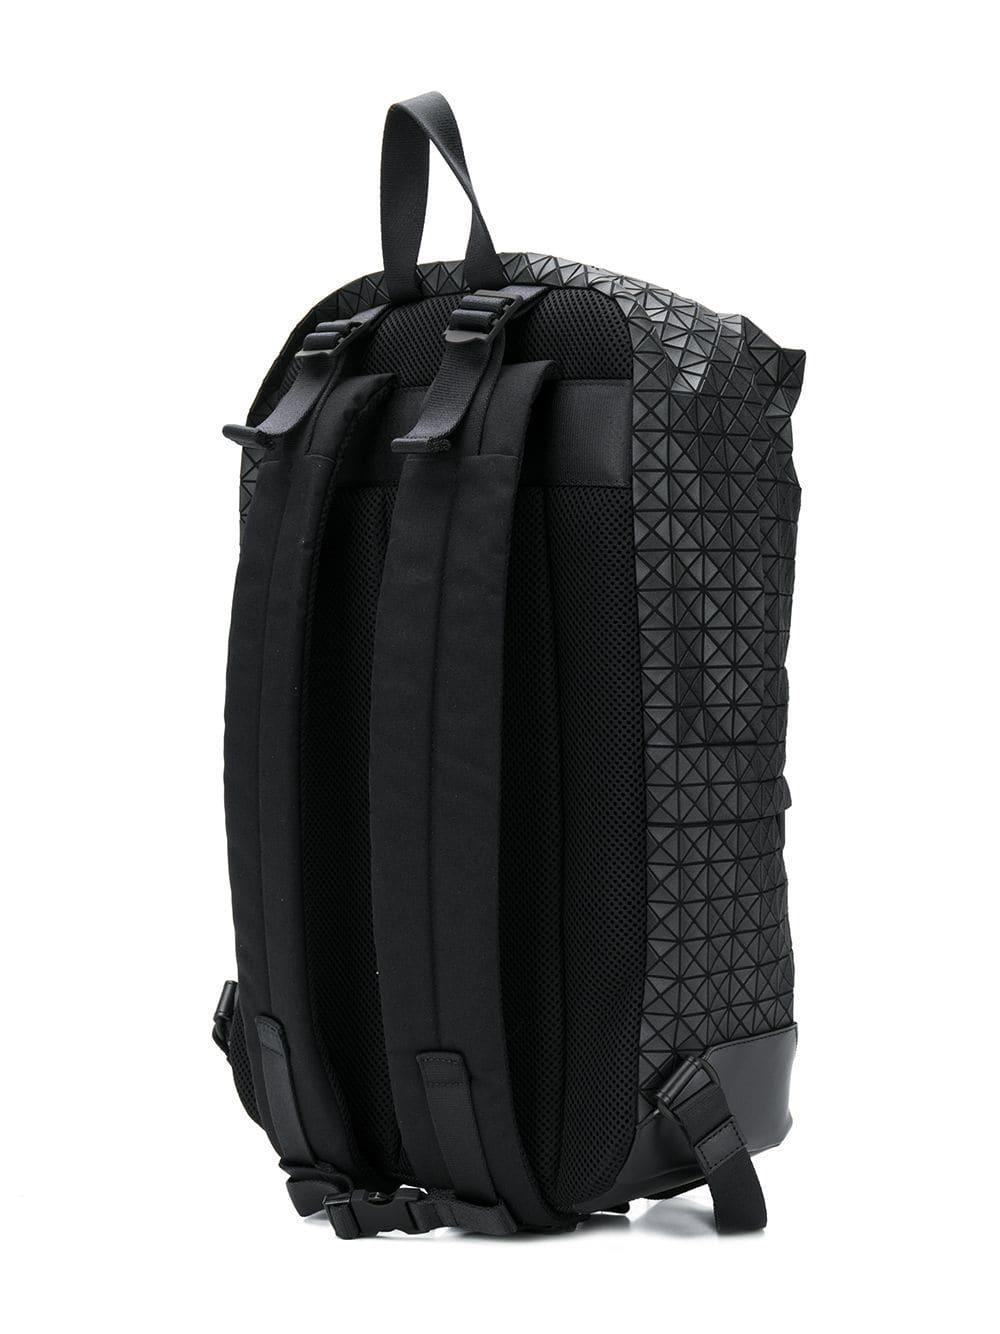 1c546238396a Bao Bao Issey Miyake - Black Prism Backpack for Men - Lyst. View fullscreen